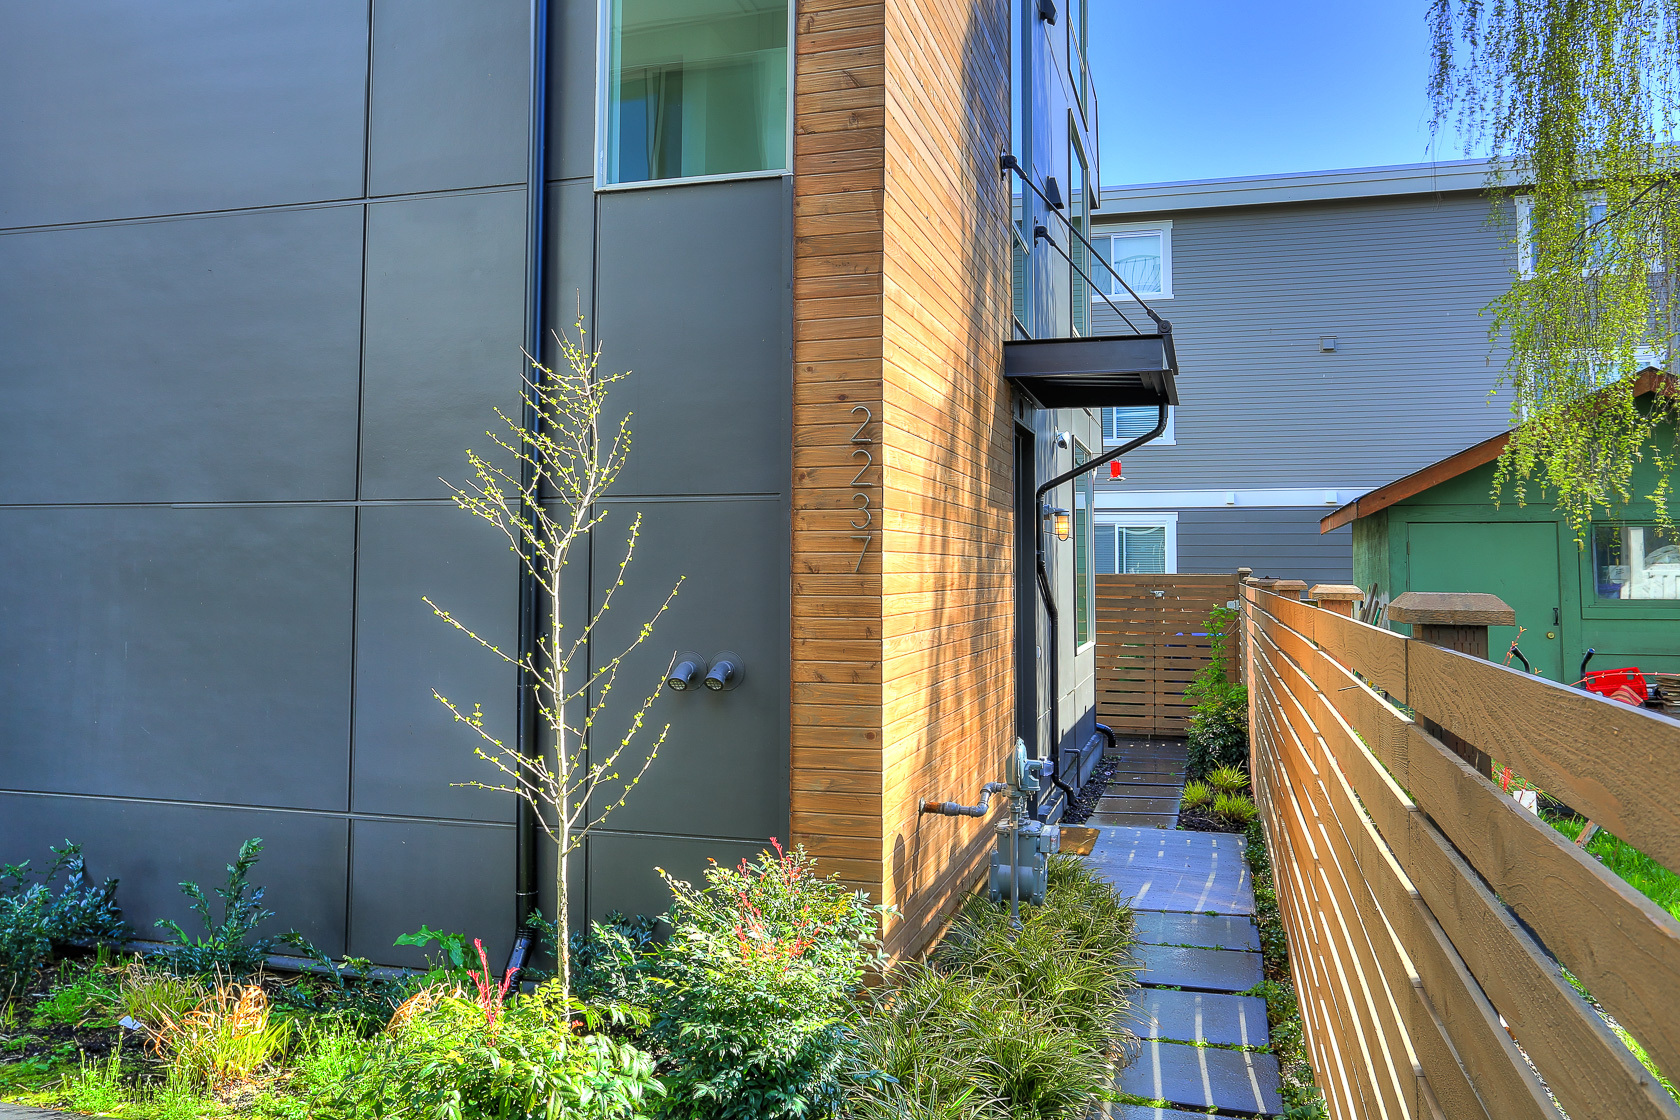 2237 Nw 60th St, Seattle, WA - USA (photo 1)